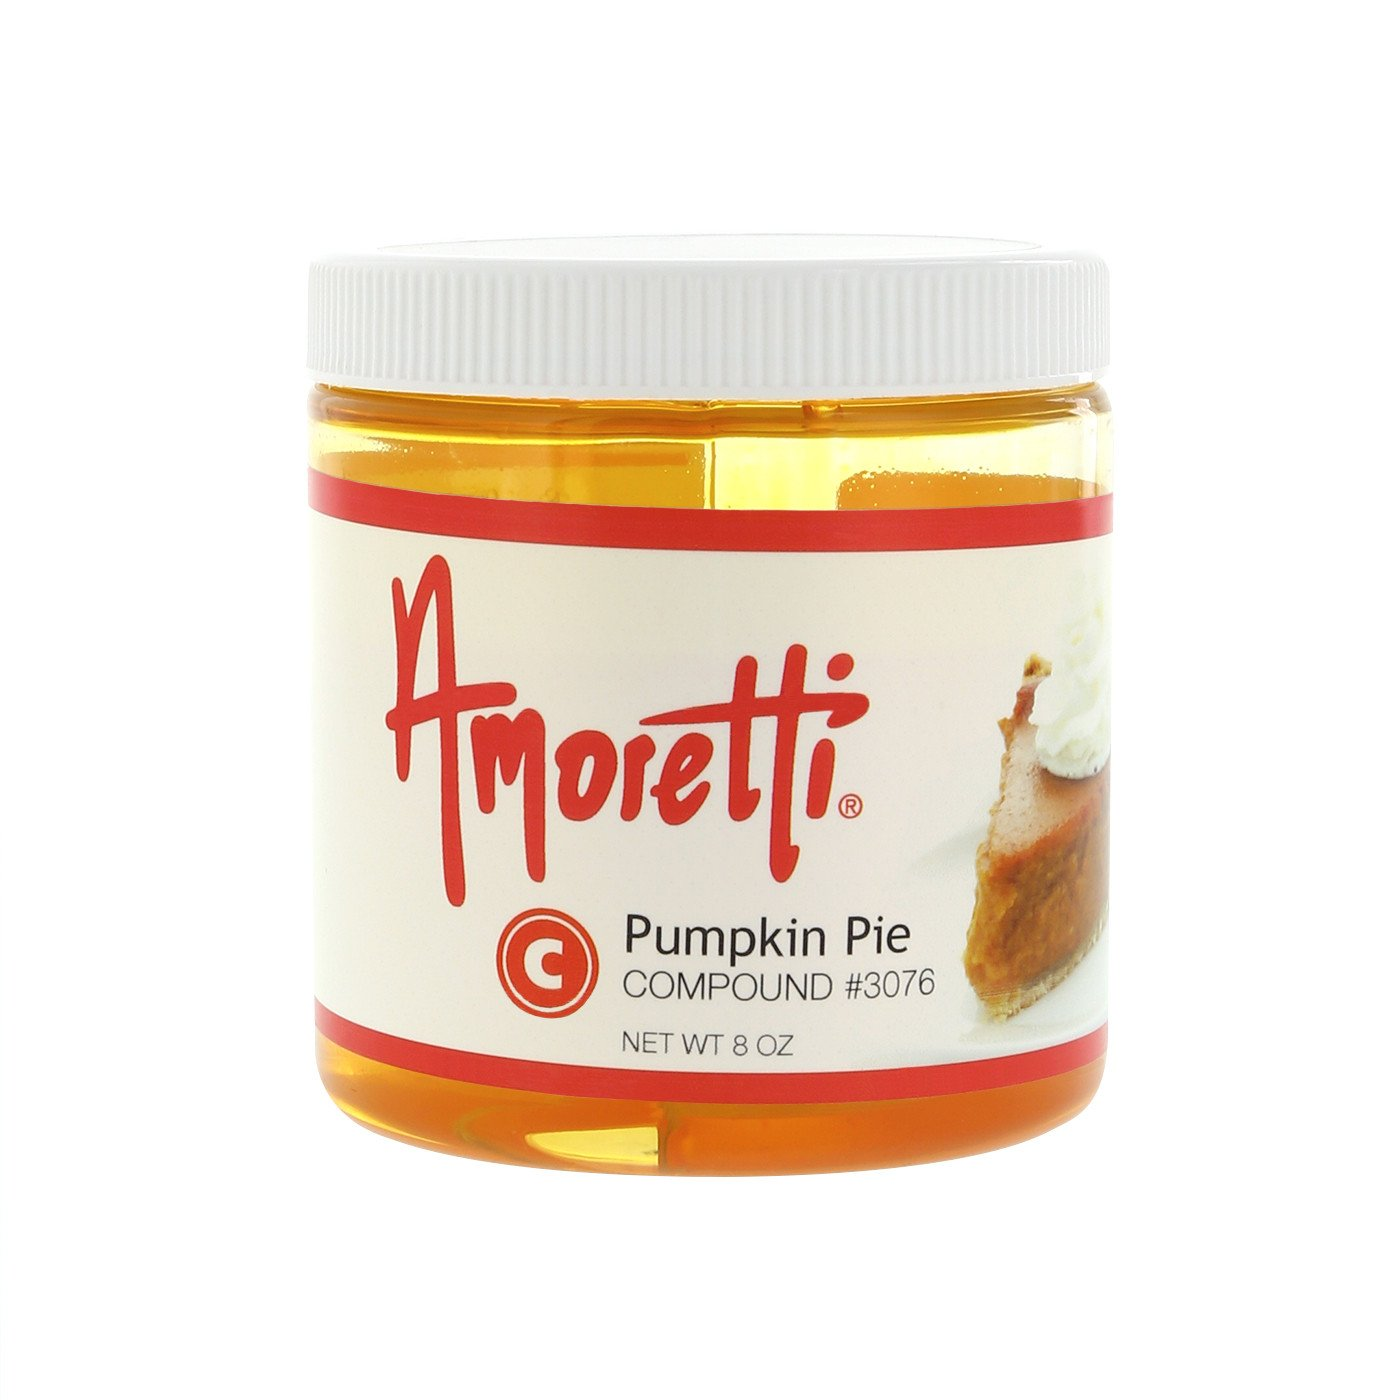 Amoretti Pumpkin Pie Compound